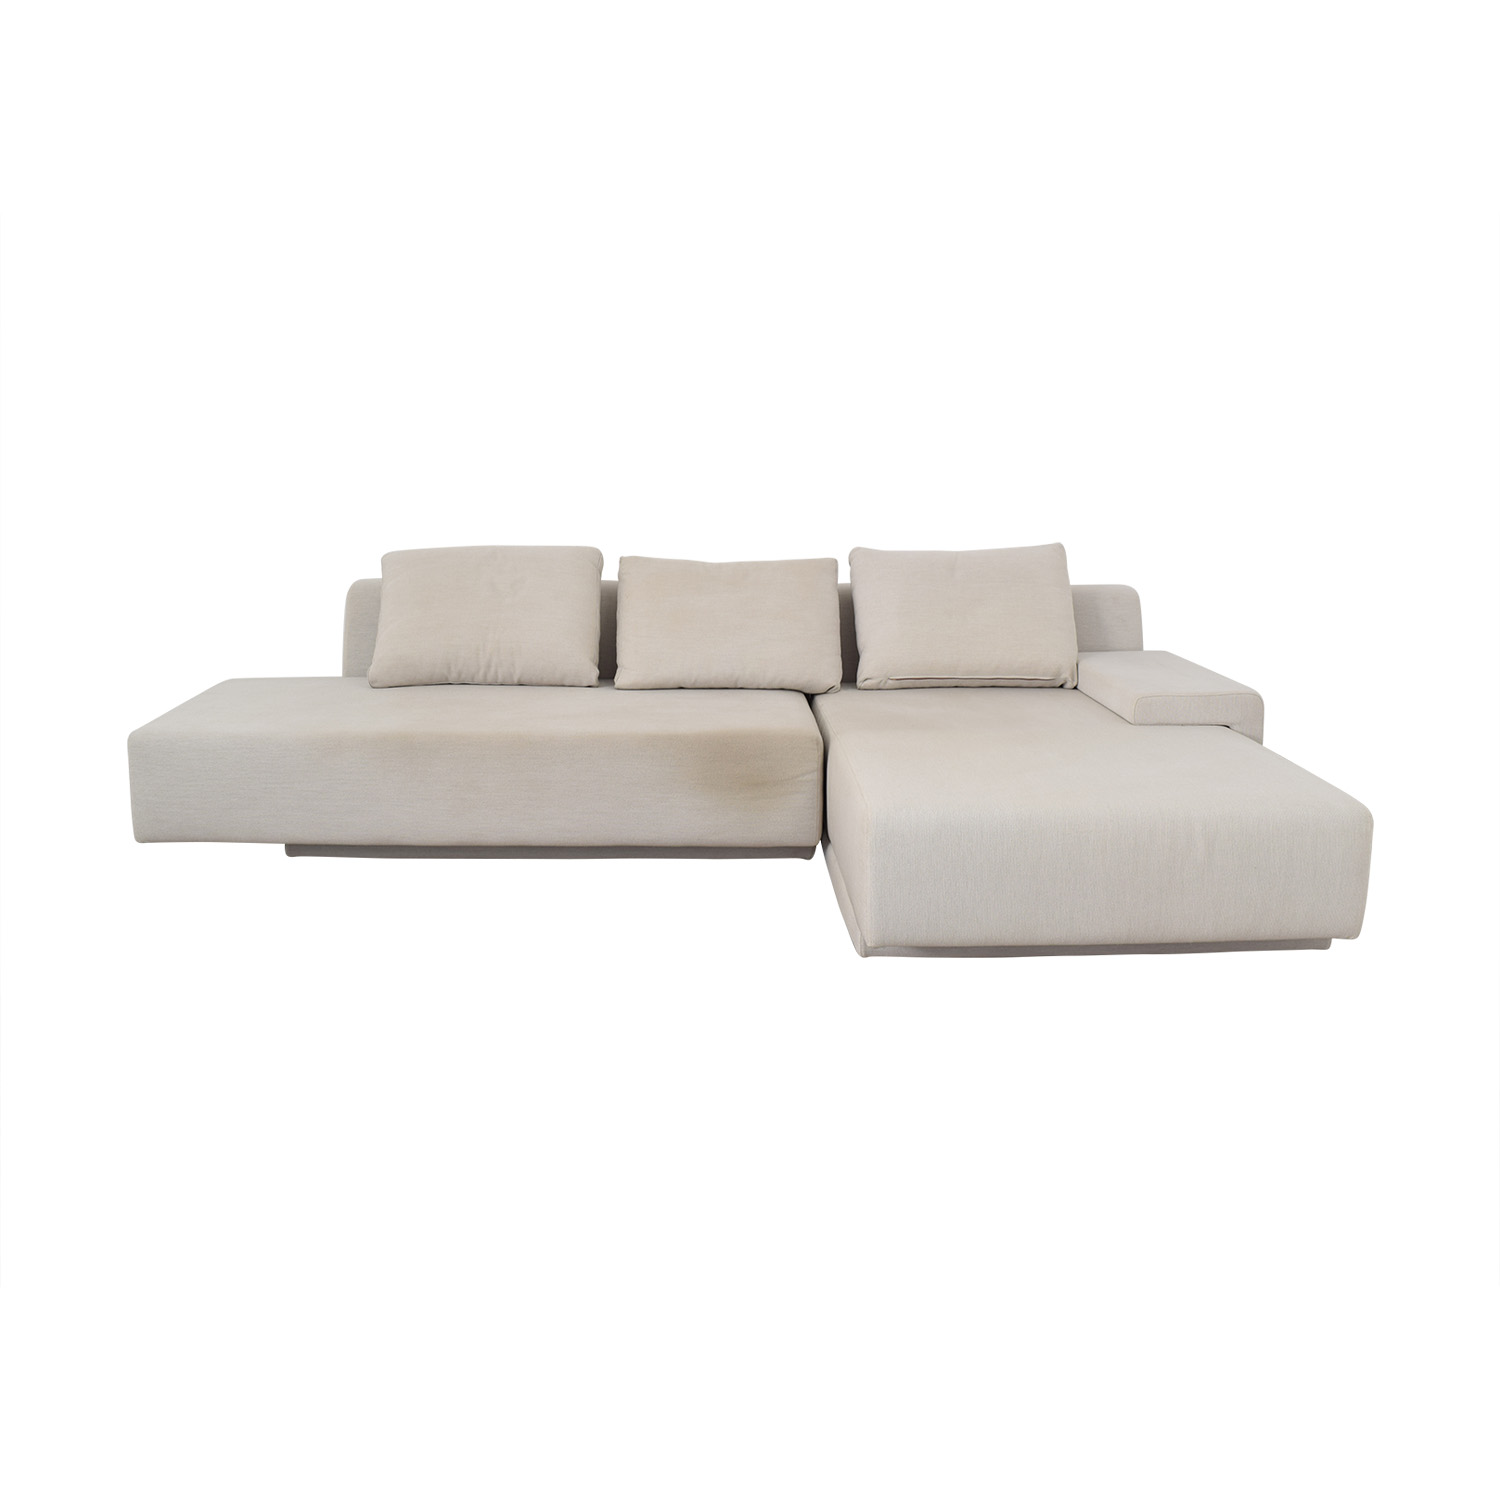 Viccarbe Viccarbe White Sectional discount